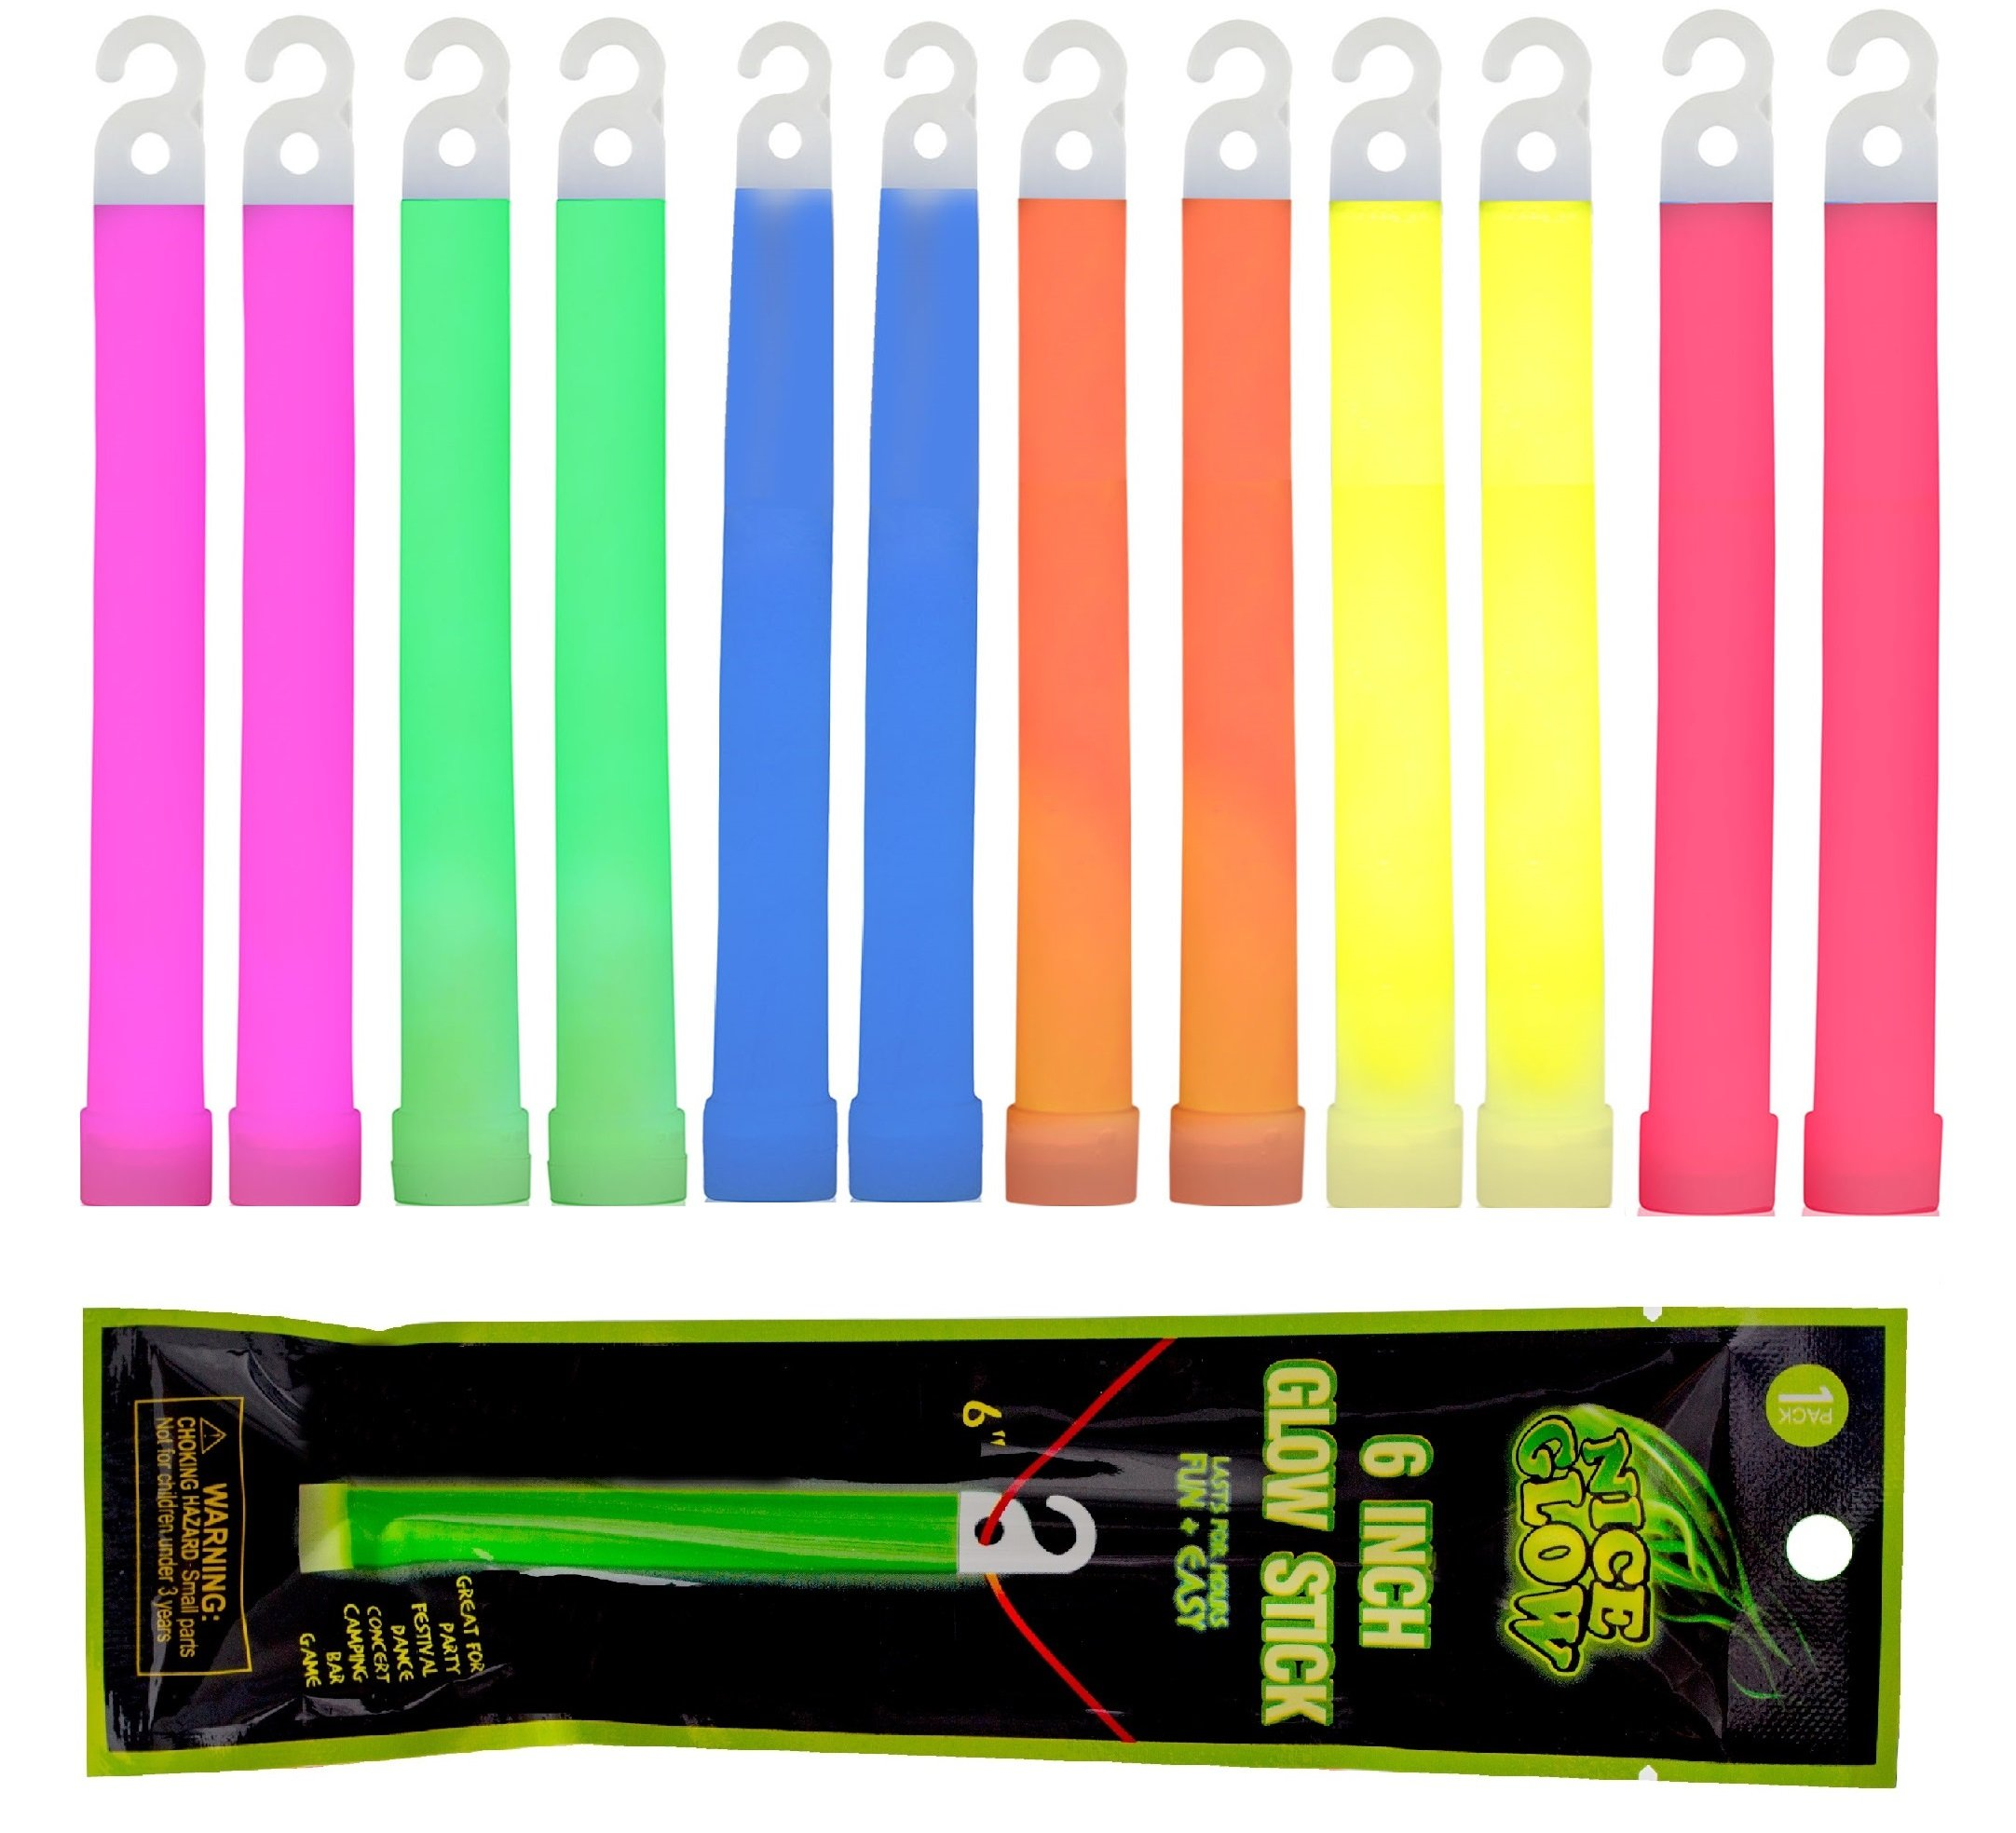 Wealers 12 Pack Light Sticks - 6'' Inch, Ultra Bright Glow In The Dark Stick with Up To 24 Hour Duration, For Emergency's, Camping, Party's, (Assorted Colors) by Wealers